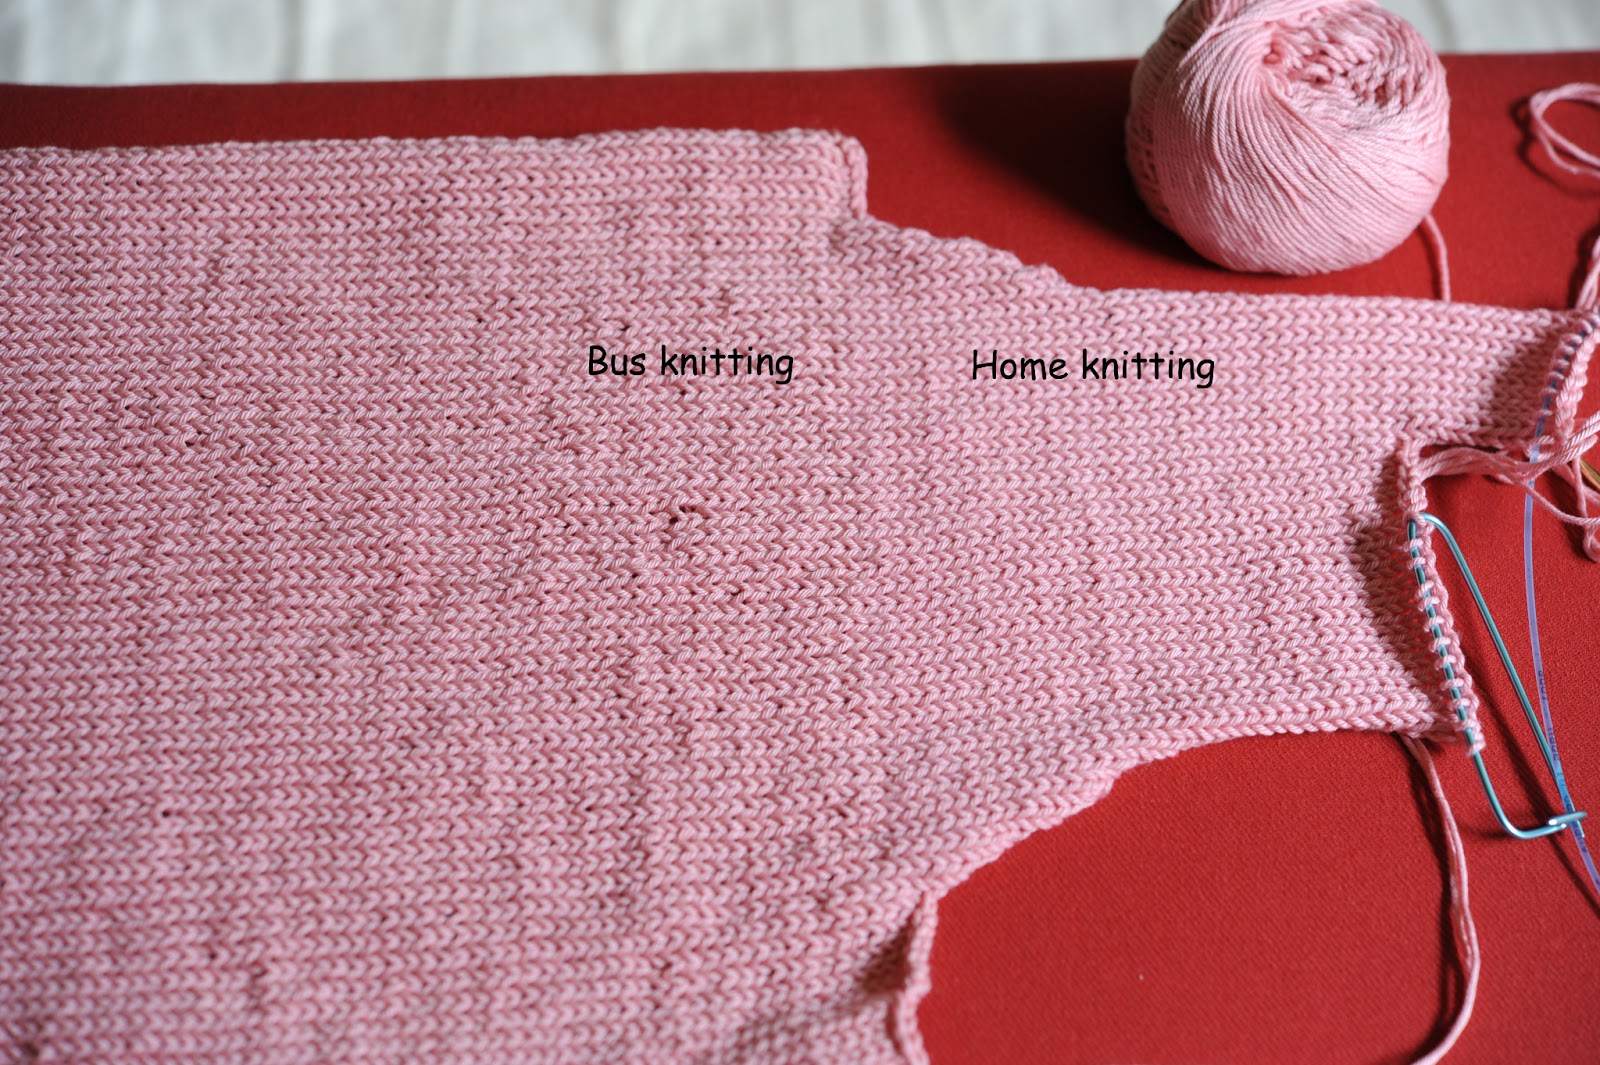 to notice the effect of bus knitting vs home knitting